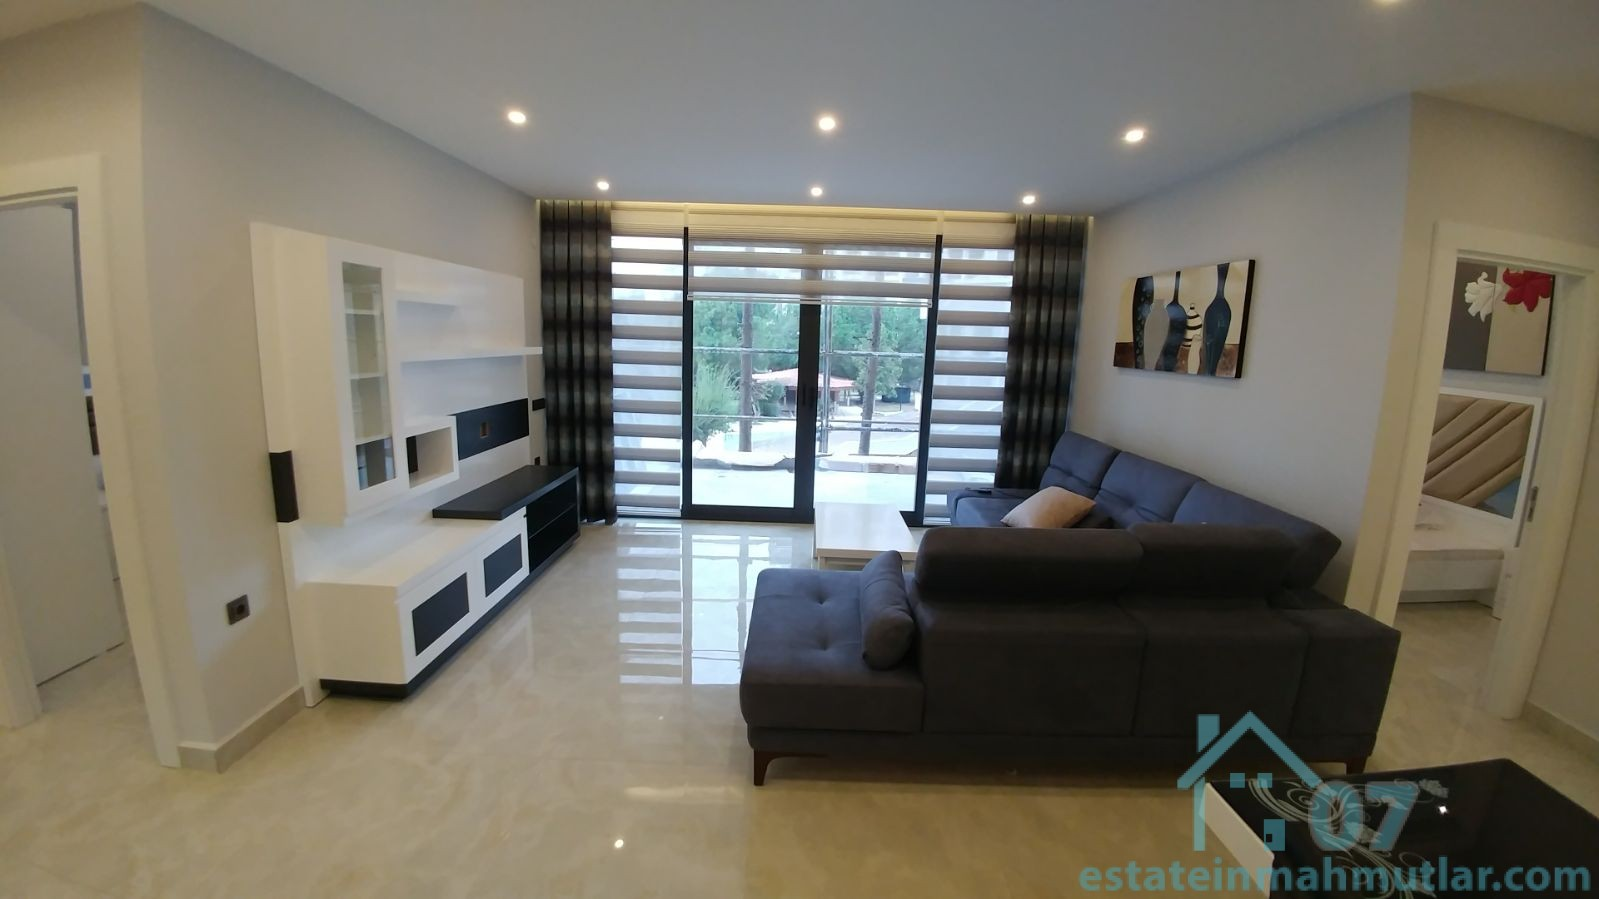 One Bedroom SEASIDE Duplexes In A Luxurious Complex Right By The Sea!